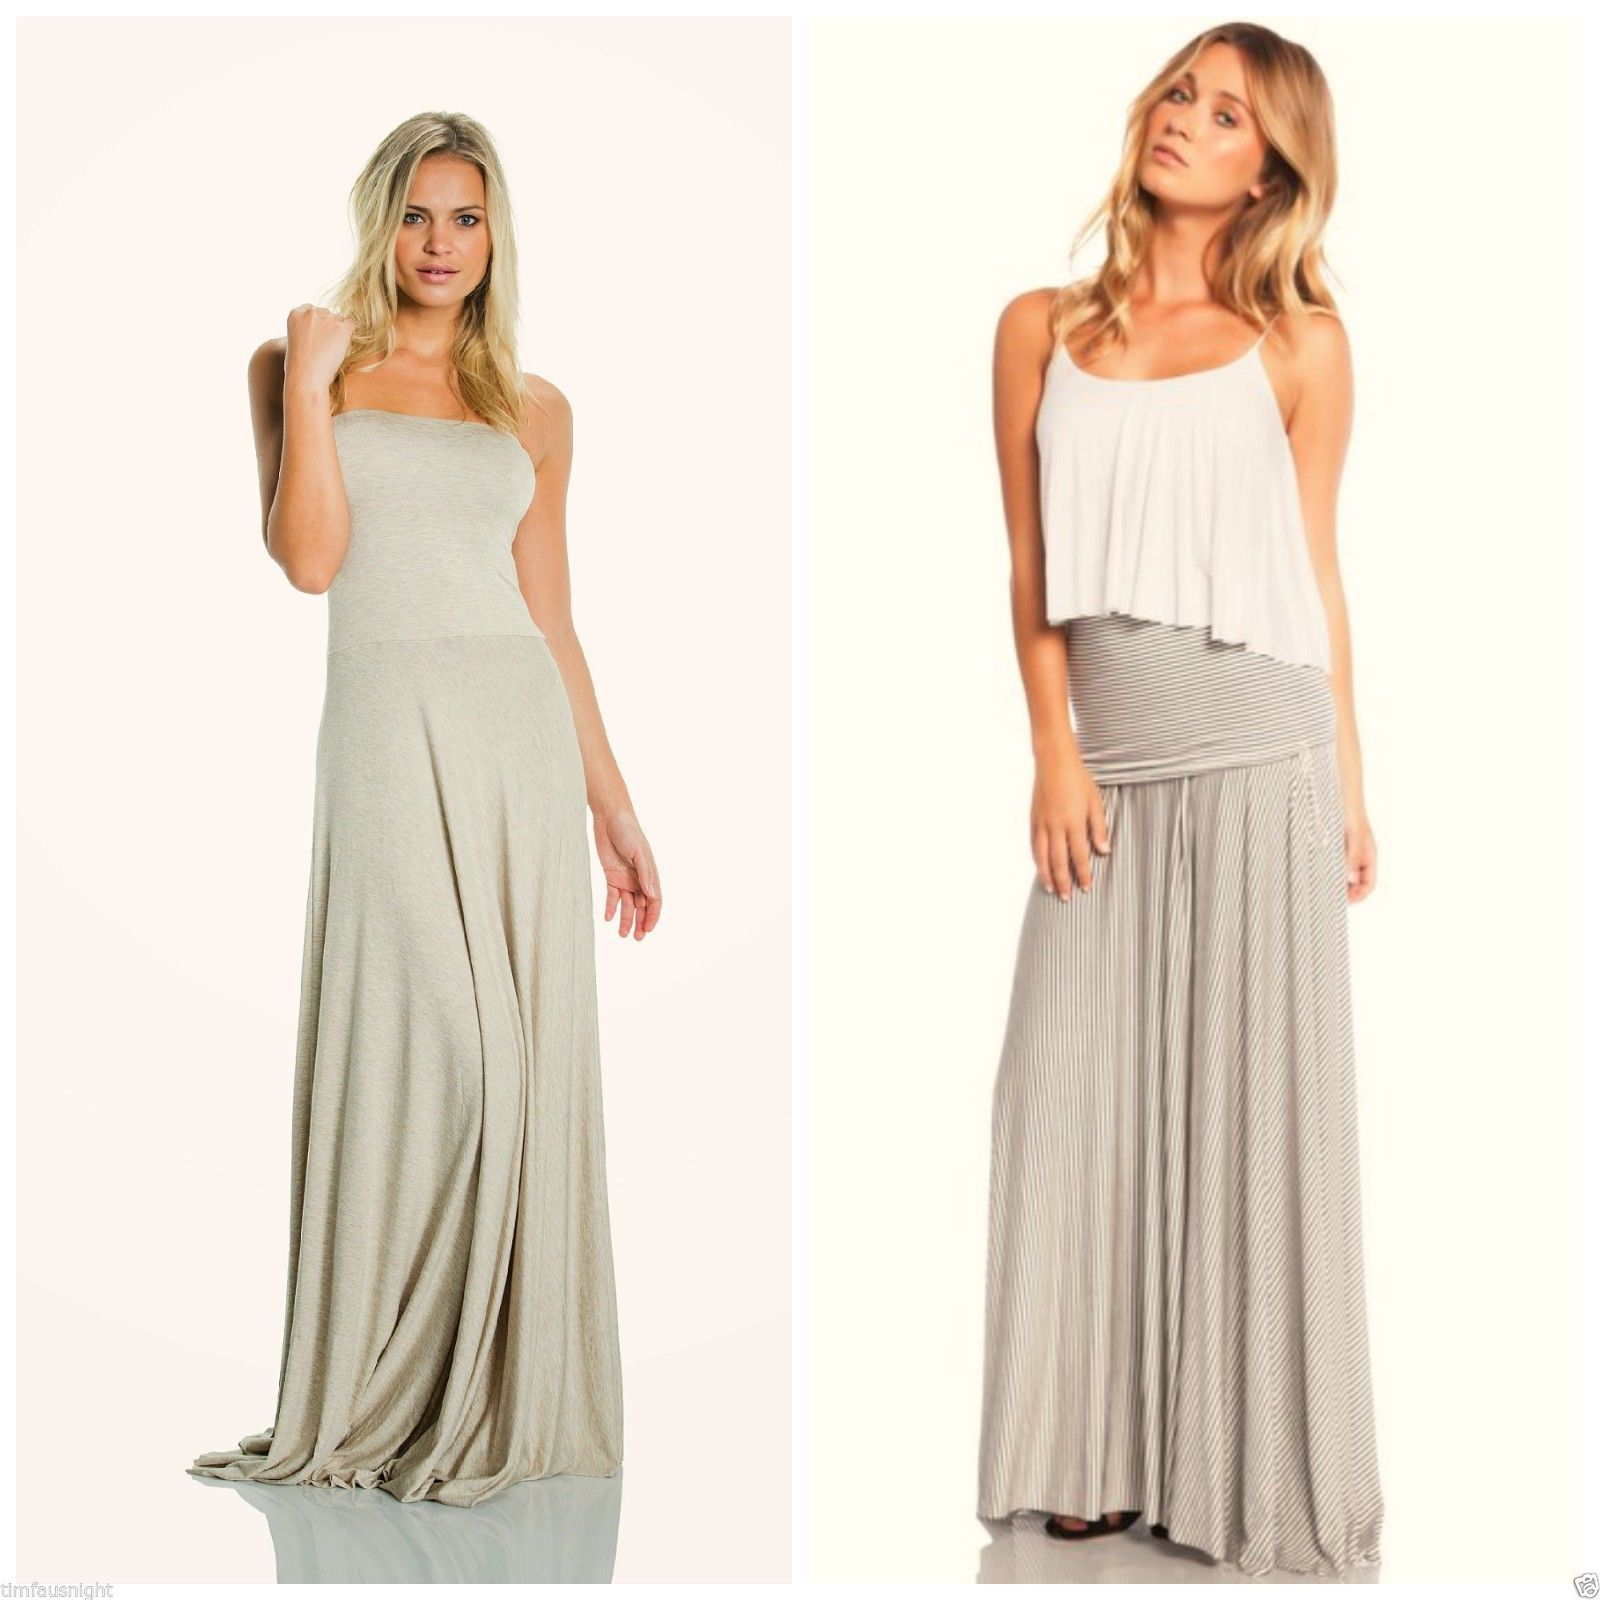 b7419adacb Elan USA Strapless Maxi Dress Convertible Maxi Skirt Heather Oatmeal s M L   78